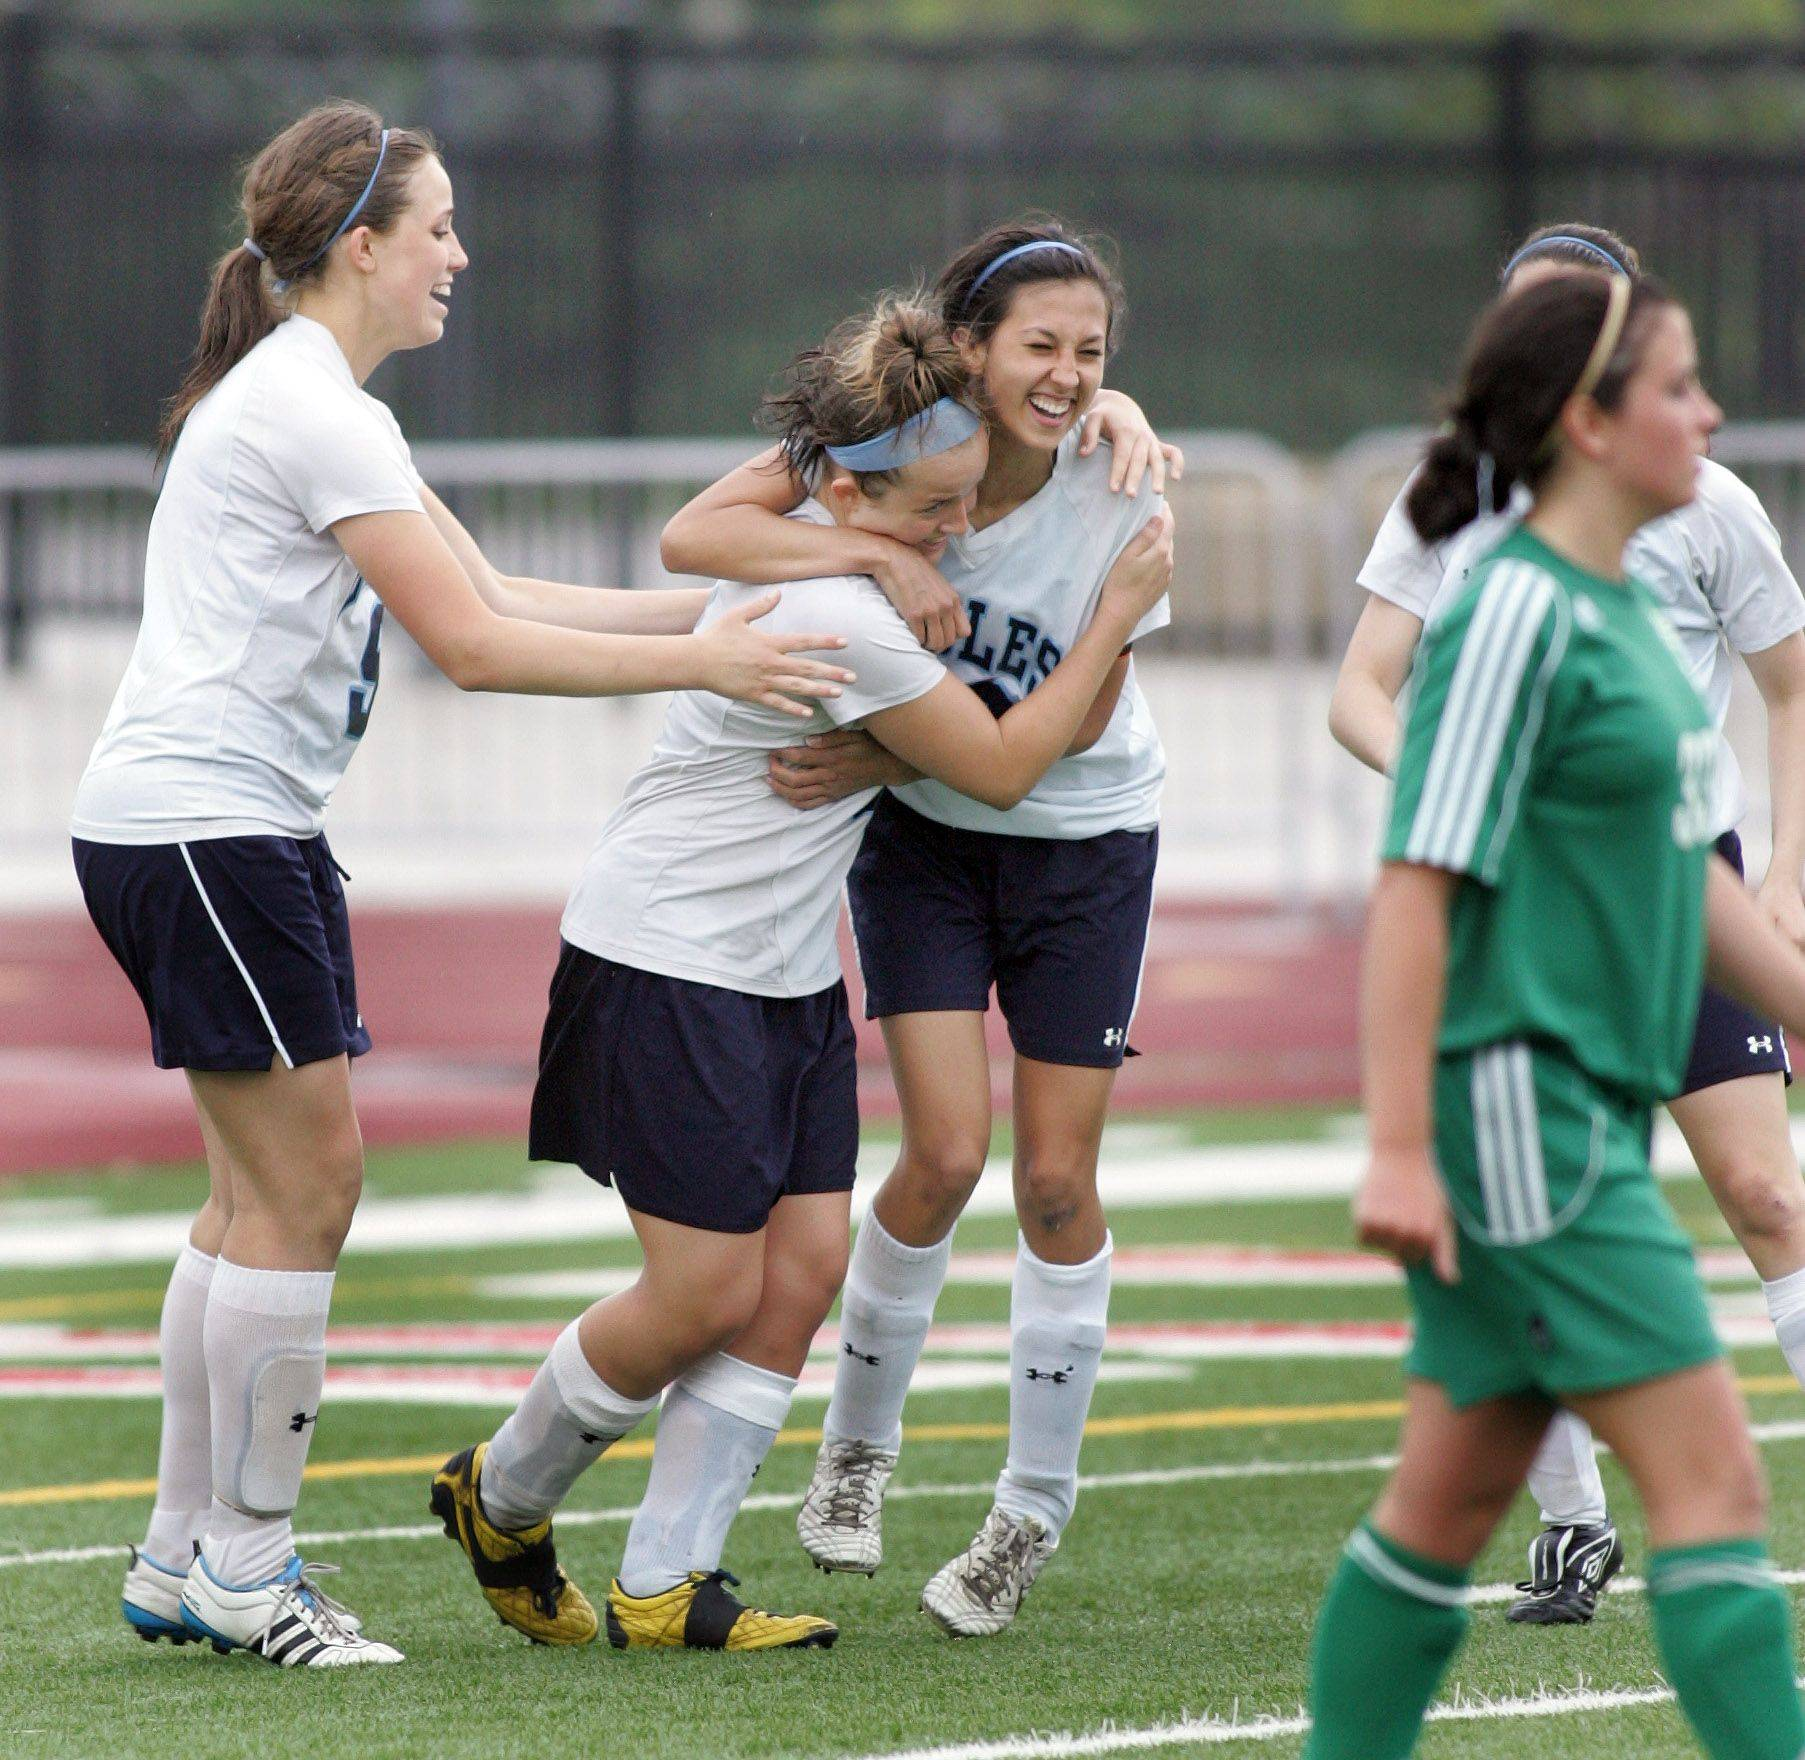 Willows Academy celebrate a goal over St. Edward in the Class 1A state soccer third place match in Naperville on Saturday.